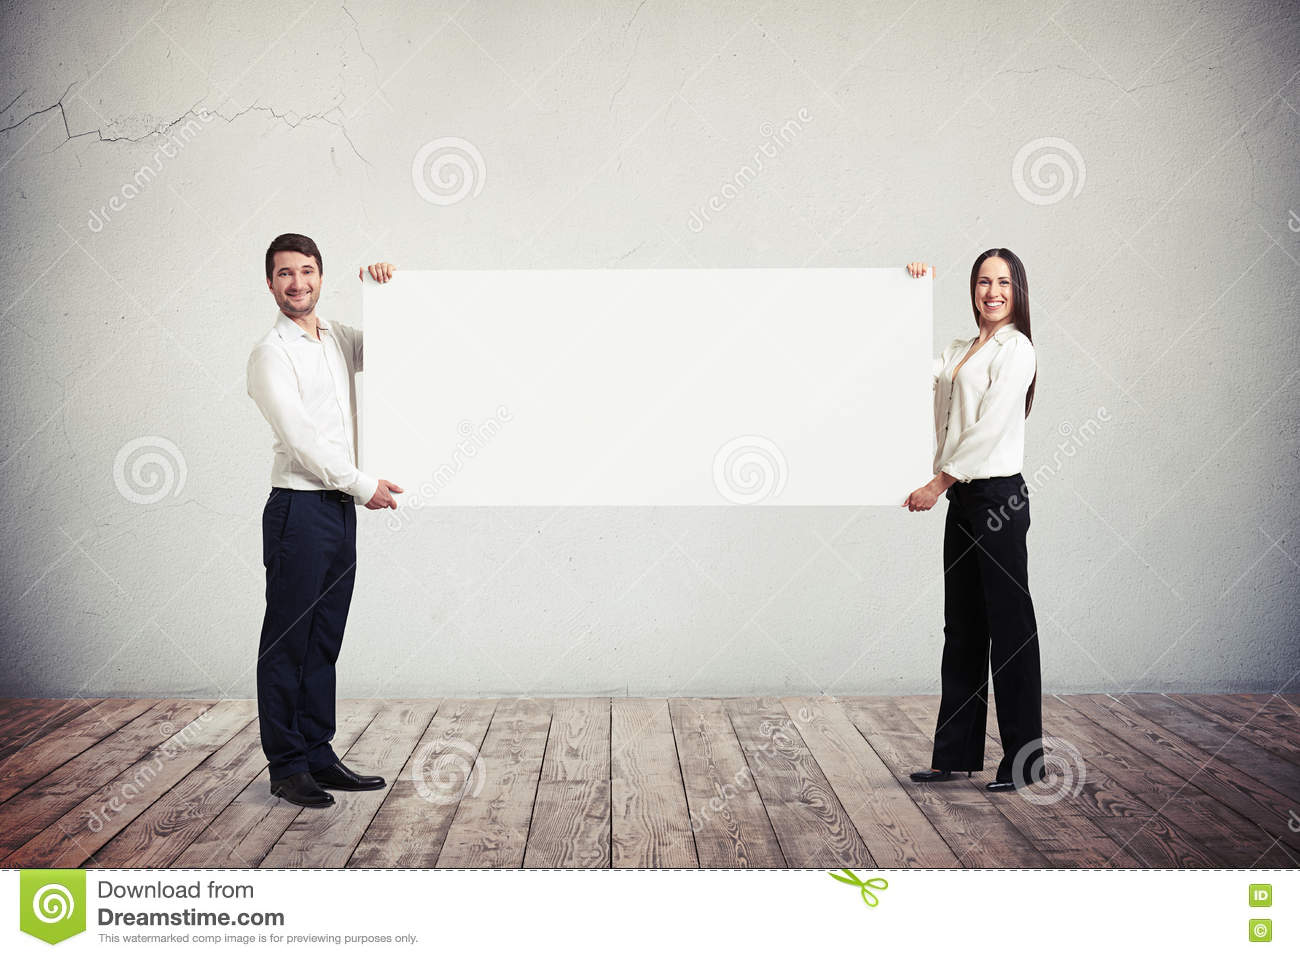 Businessman and businesswoman holding blank horizontal white ban